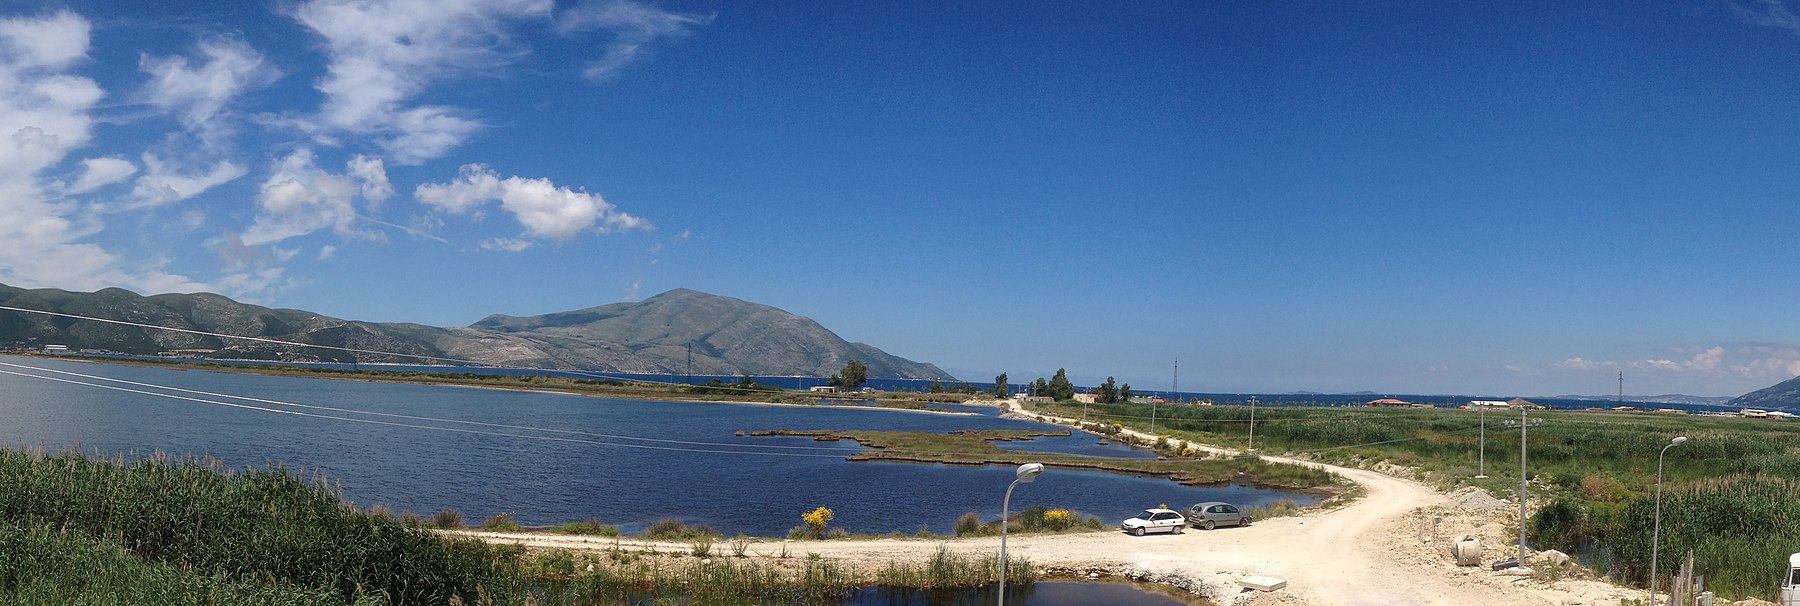 Laguna,Orikum Albania (photo Panorama).jpg